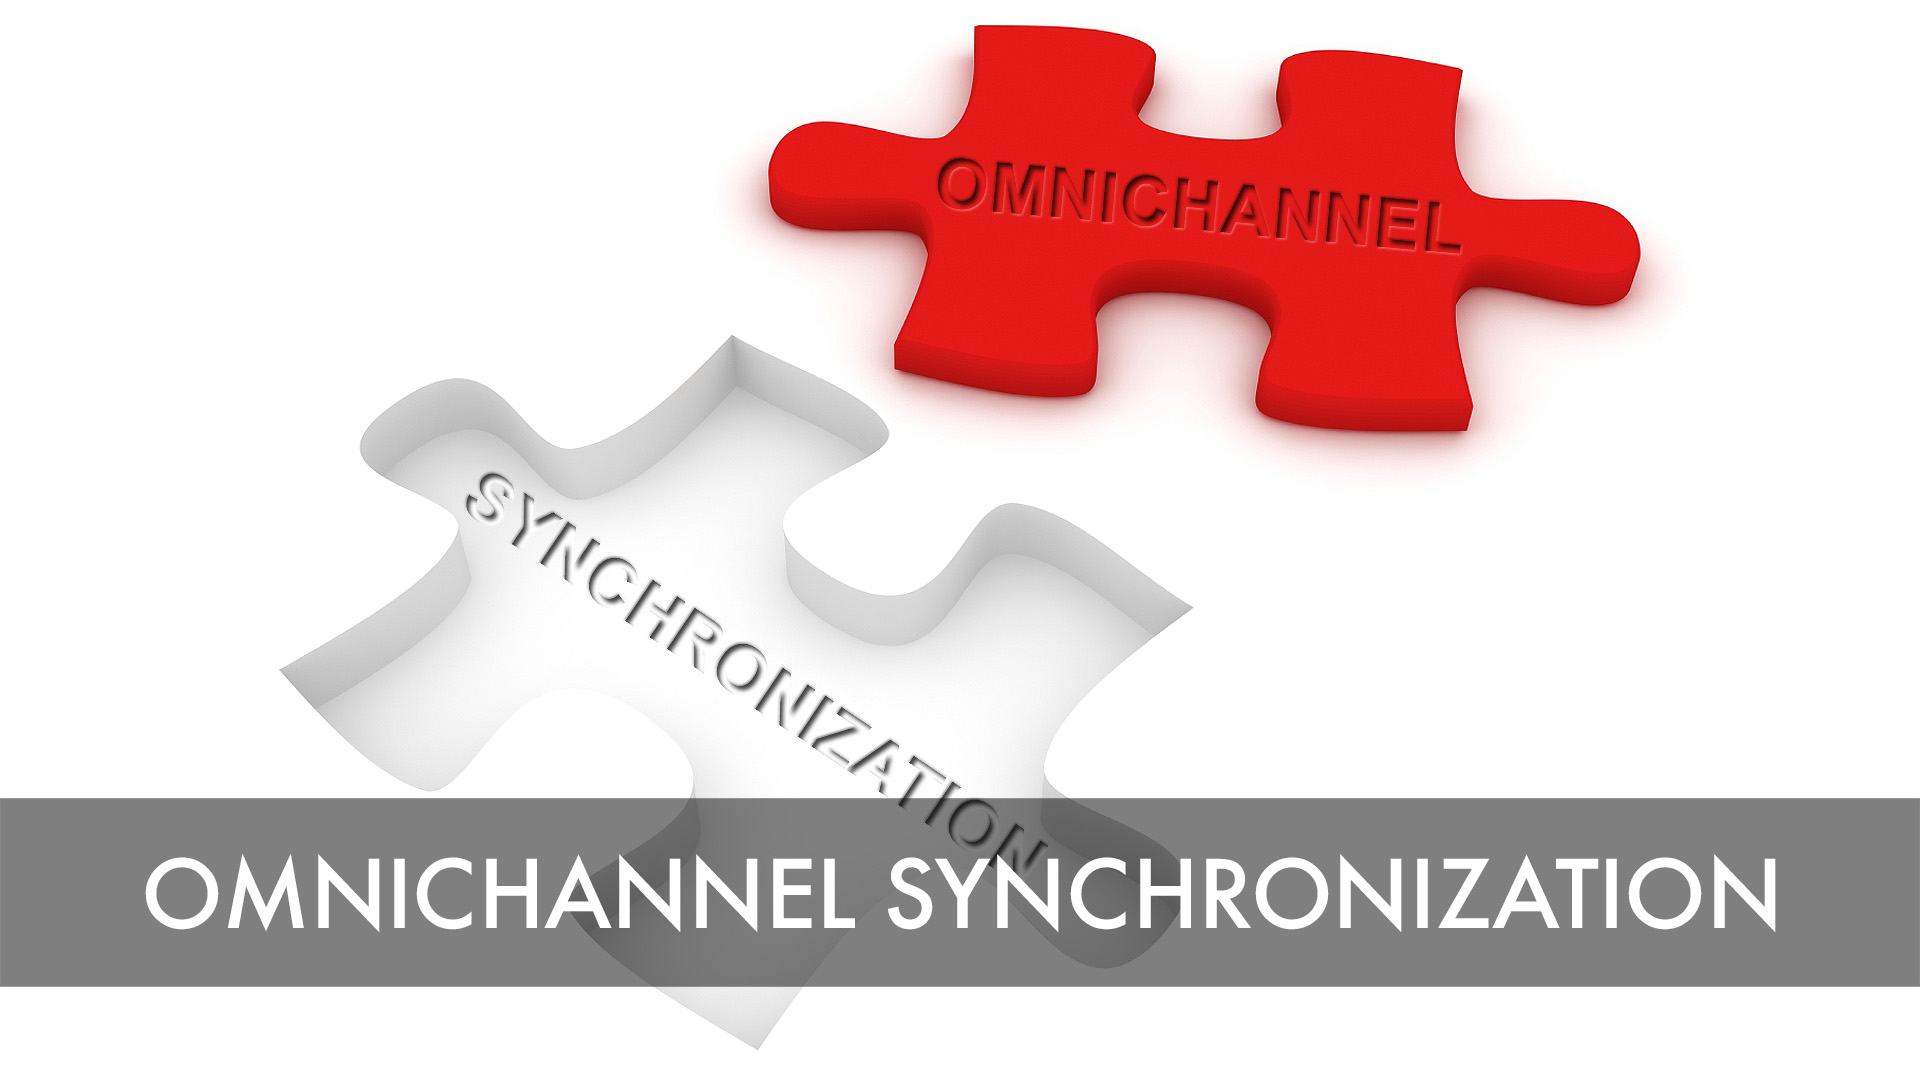 Omnichannel Synchronization Thumbnail.jpg